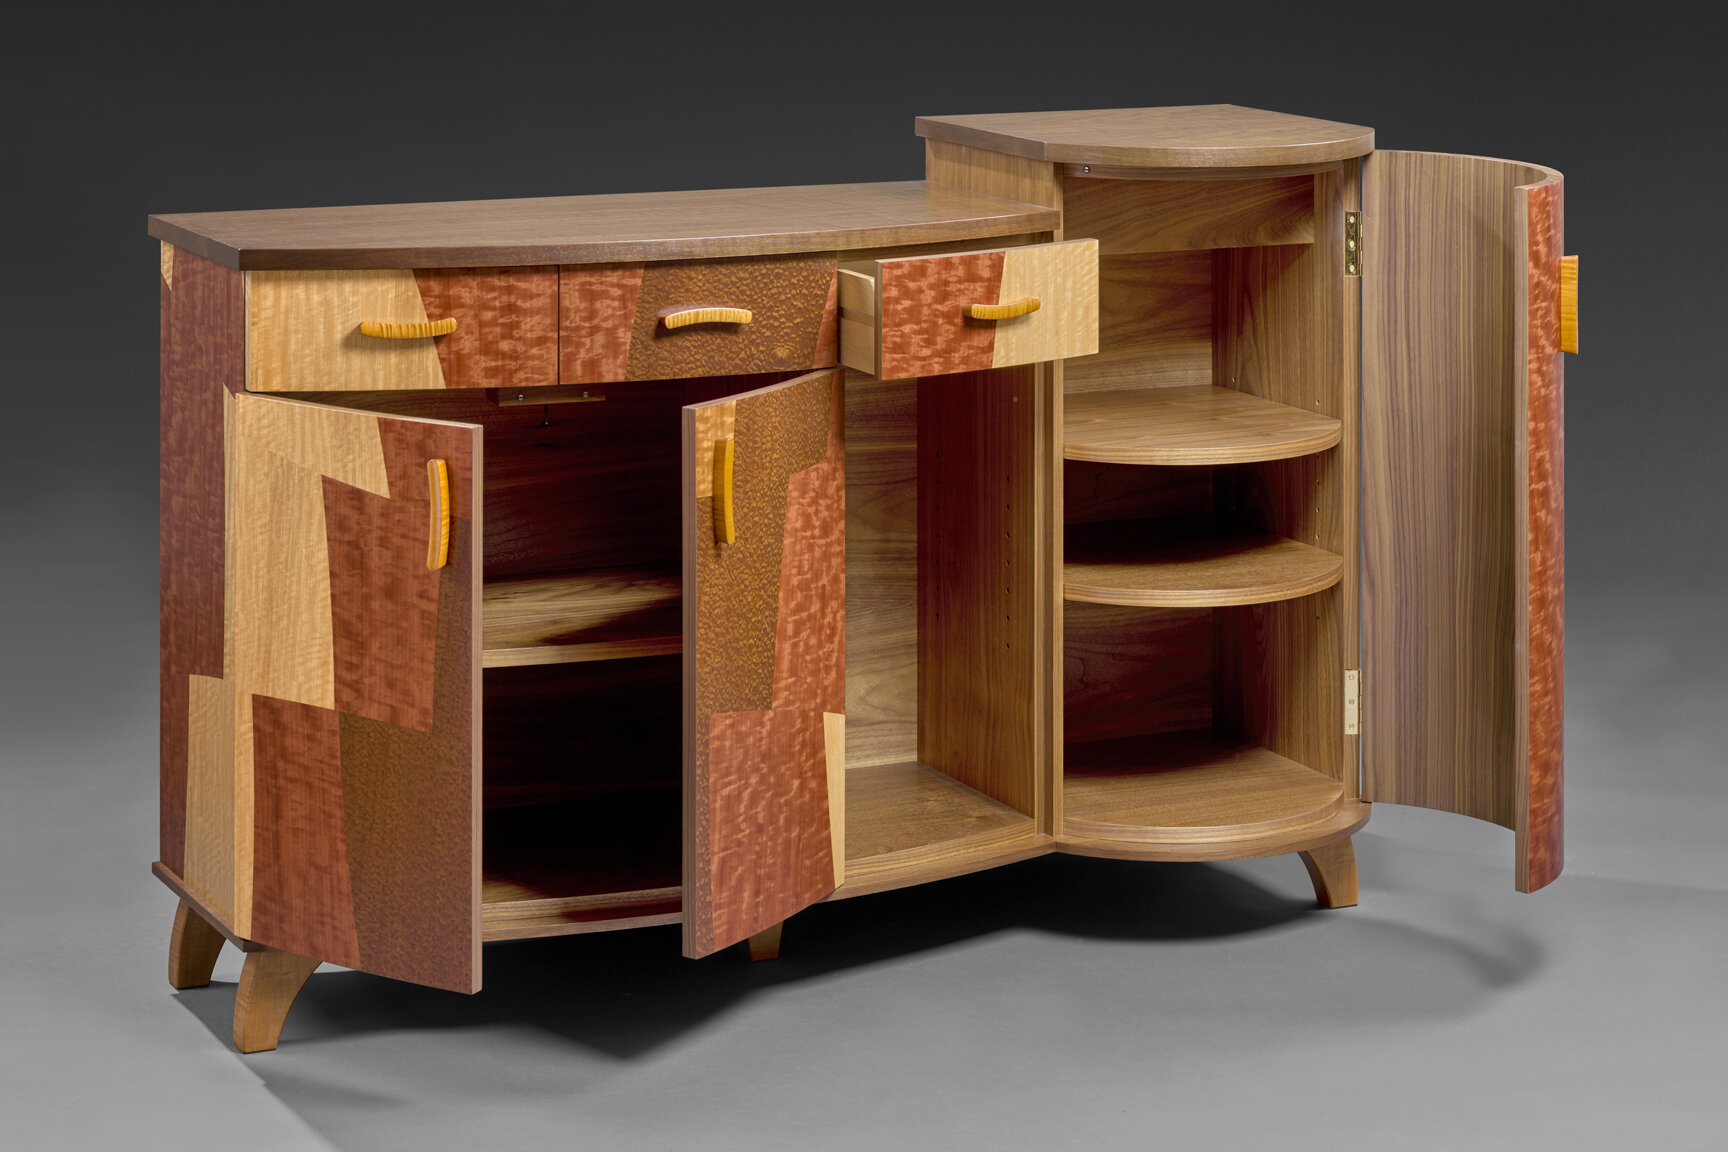 """Port Charlotte Console - American Black Walnut, Figured Anigre, Pomelle Sapele, Block Mottled Makore, Curly Maple 38""""H x 60""""W x 19""""DDetail of drawers and shelves."""